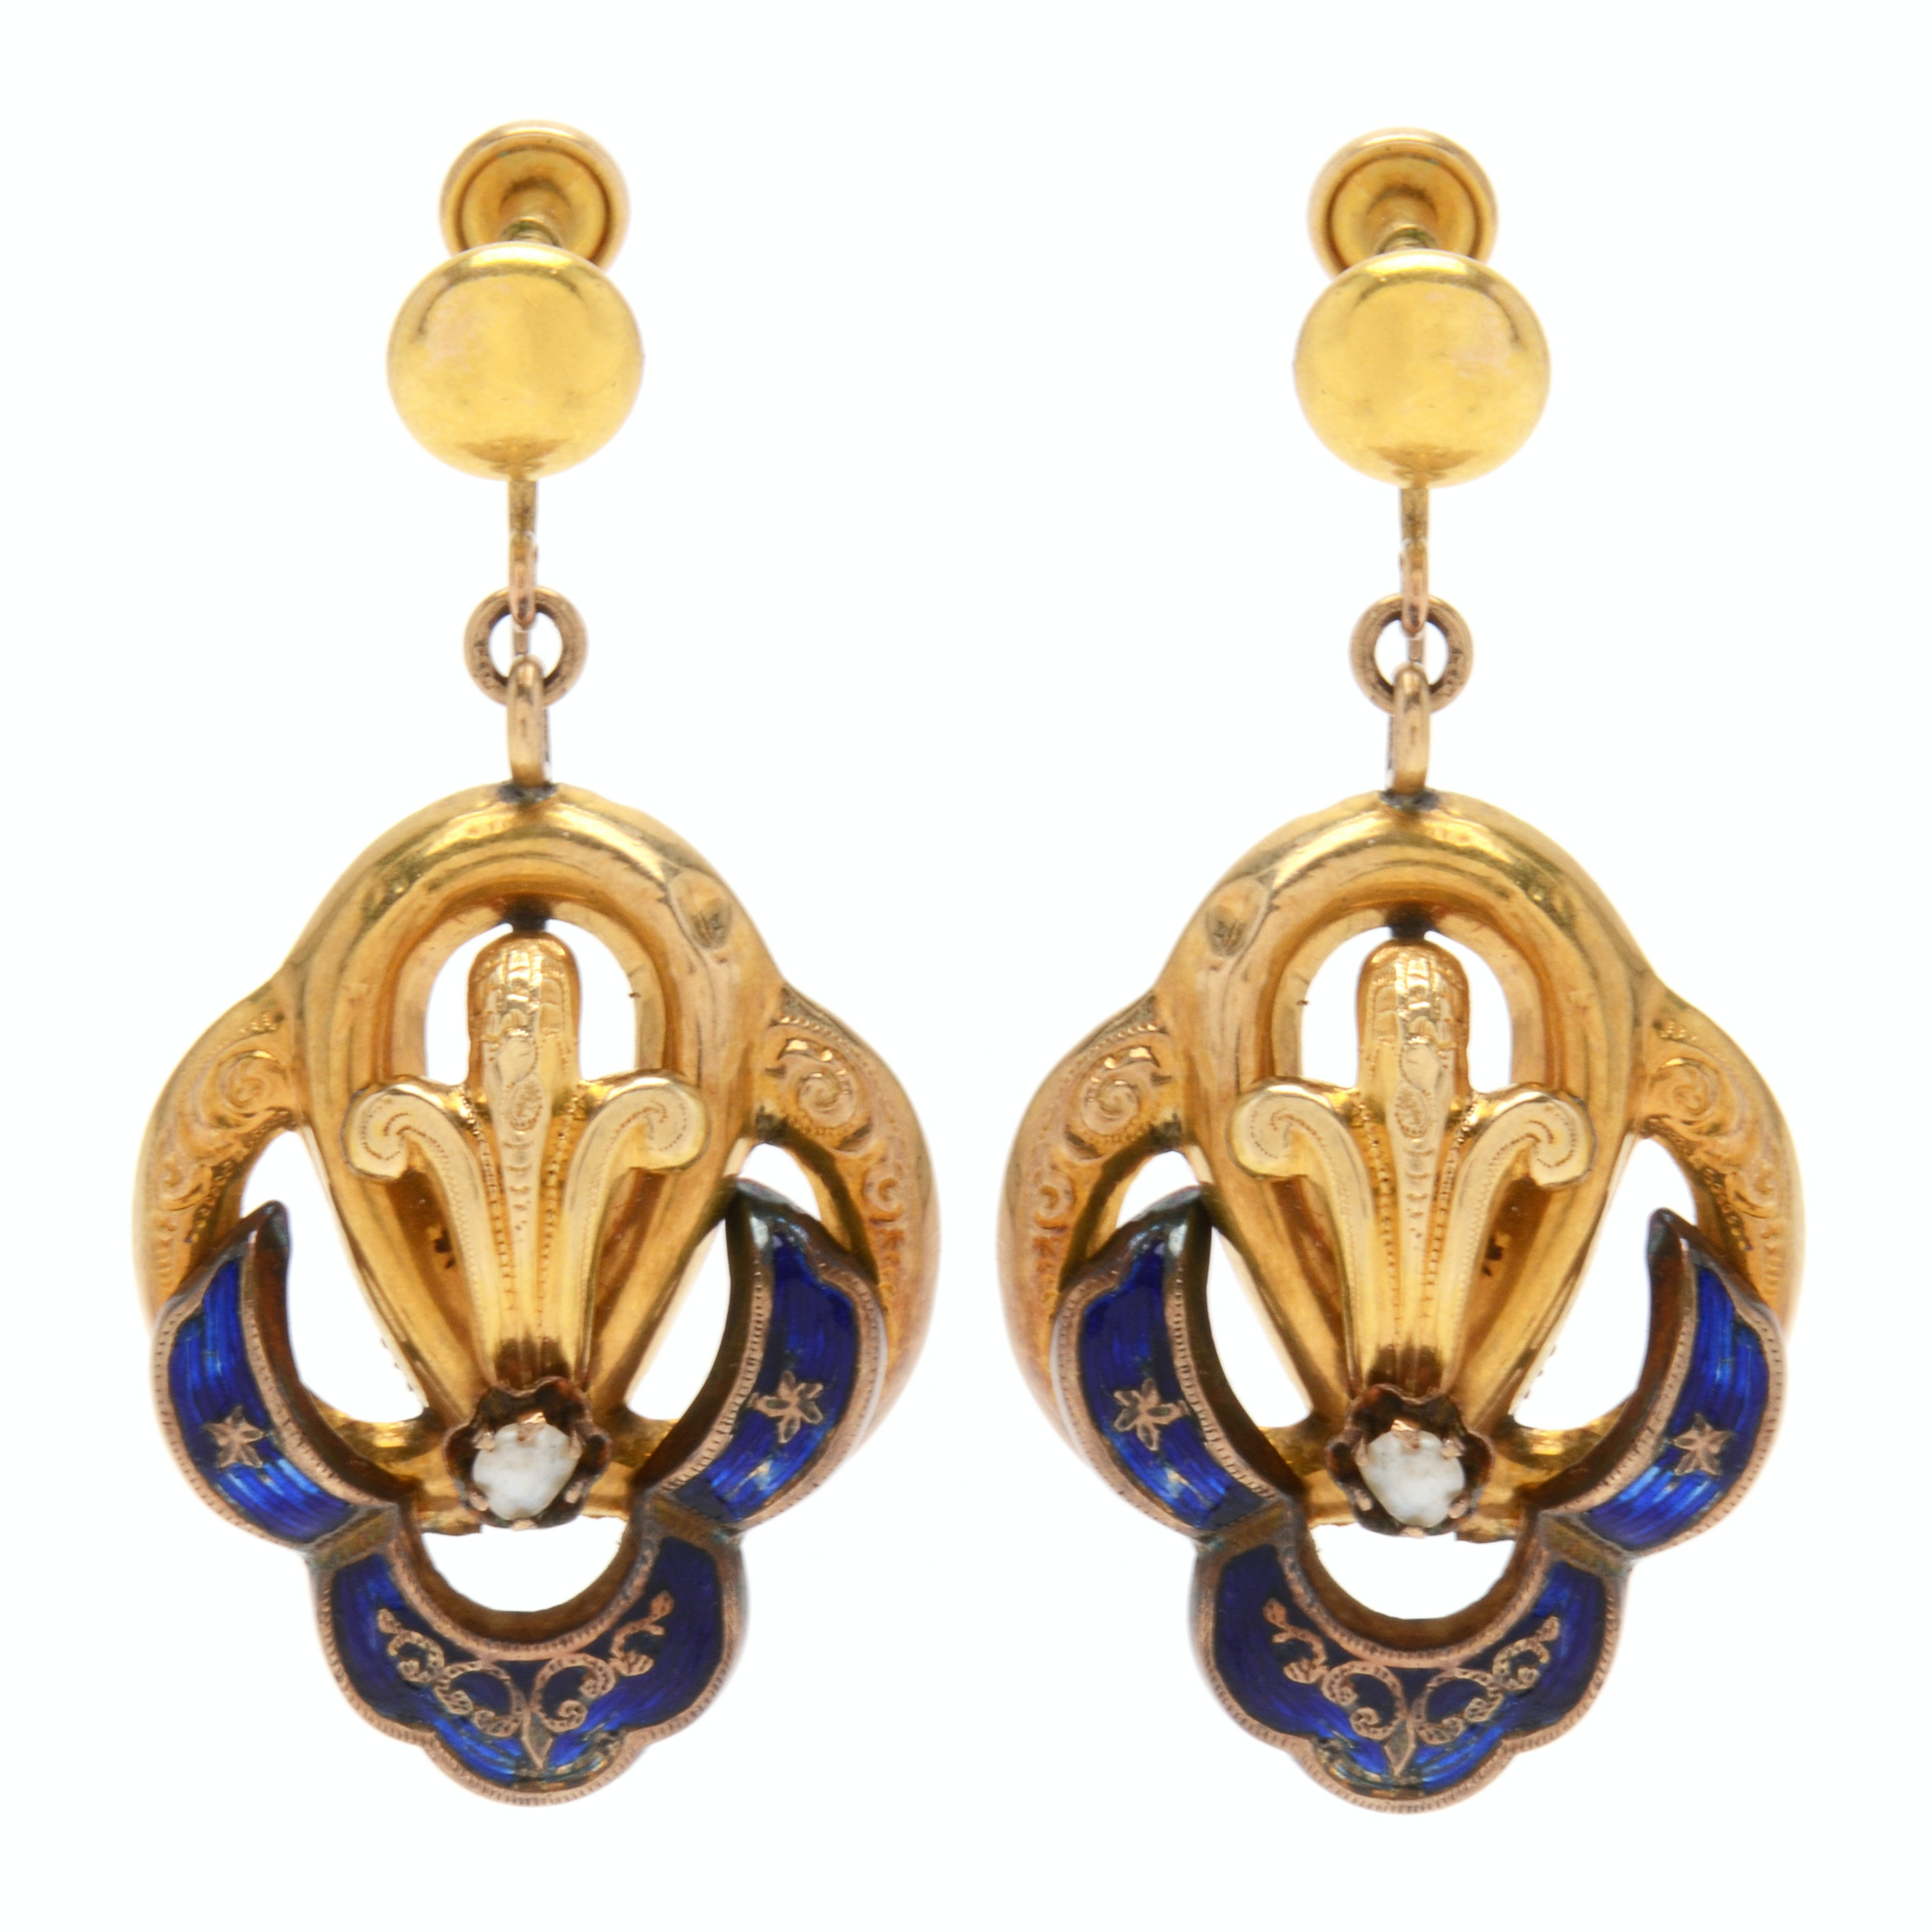 Late Victorian 10K Yellow Gold Seed Pearl and Blue Enamel Earrings